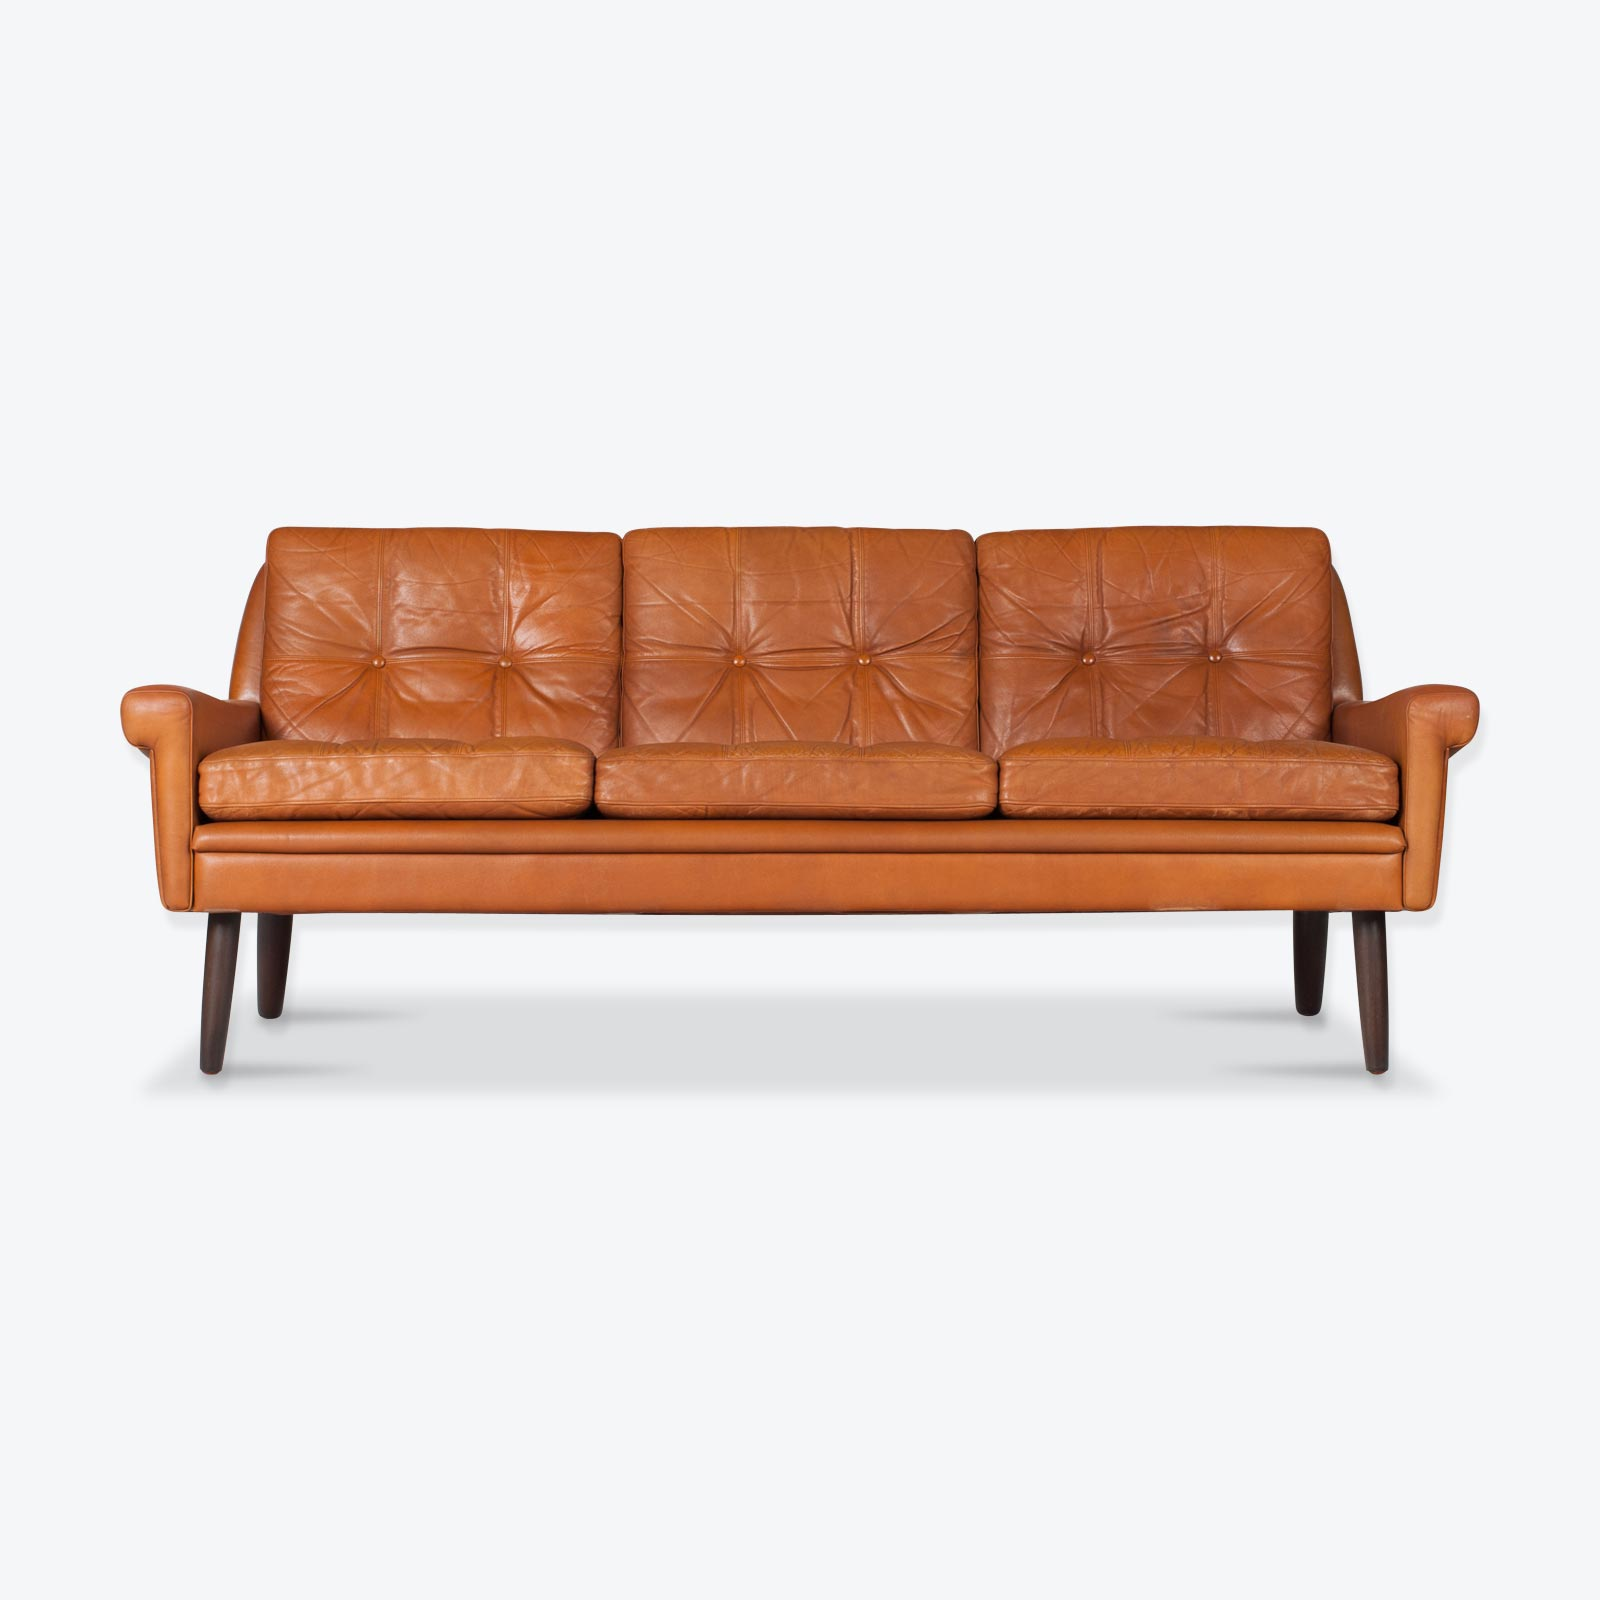 3 Seat Sofa in Tan Leather with Button Detailing for Skipper, 1960s, Denmark-hero